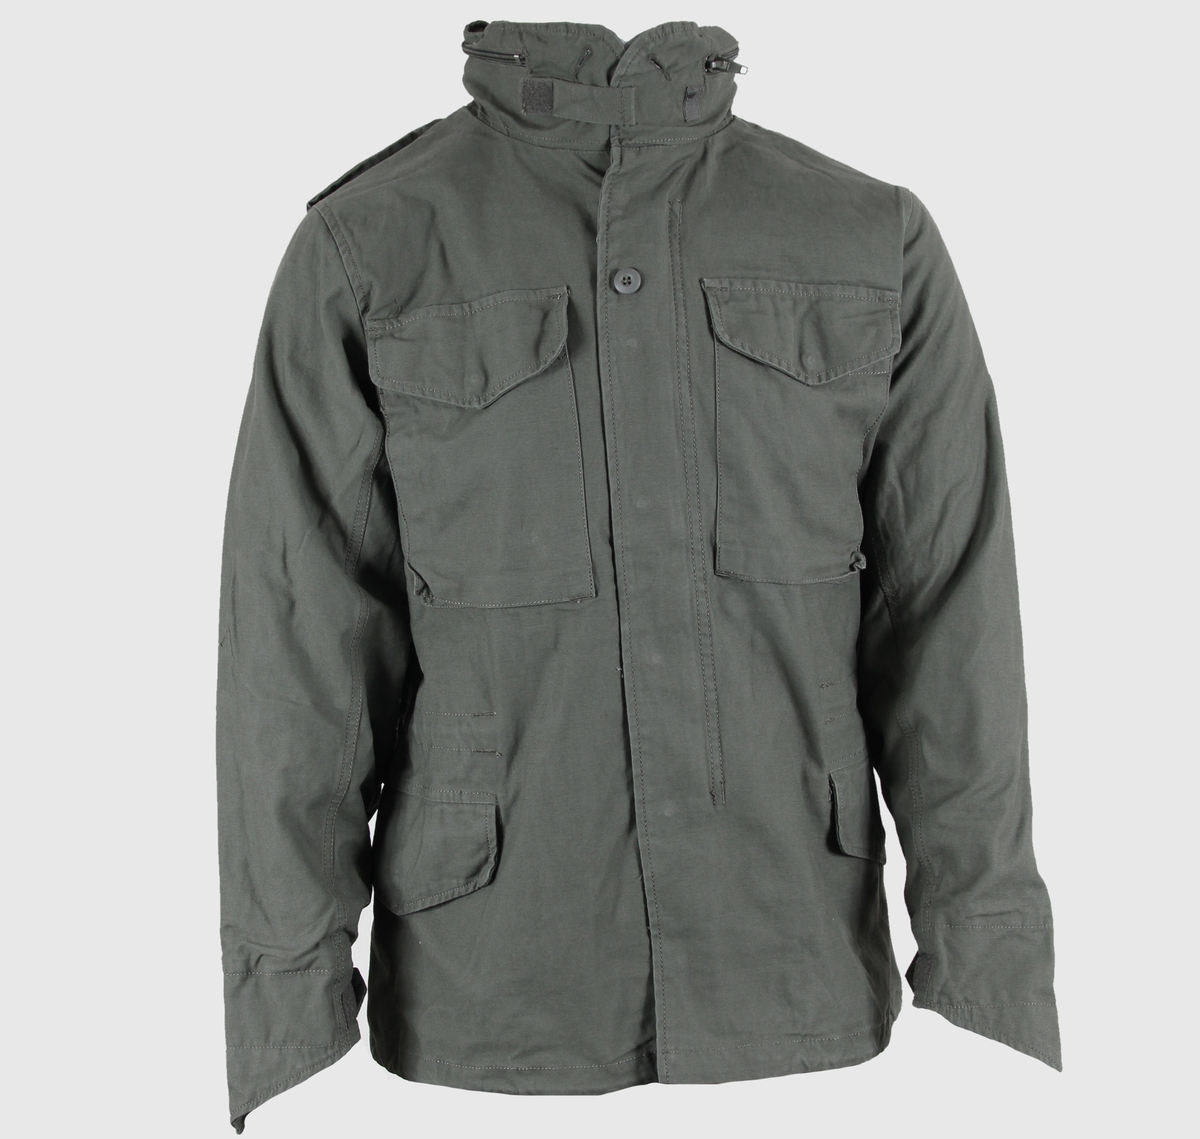 bunda pánská M65 Fieldjacket NYCO washed - OLIV - 100304